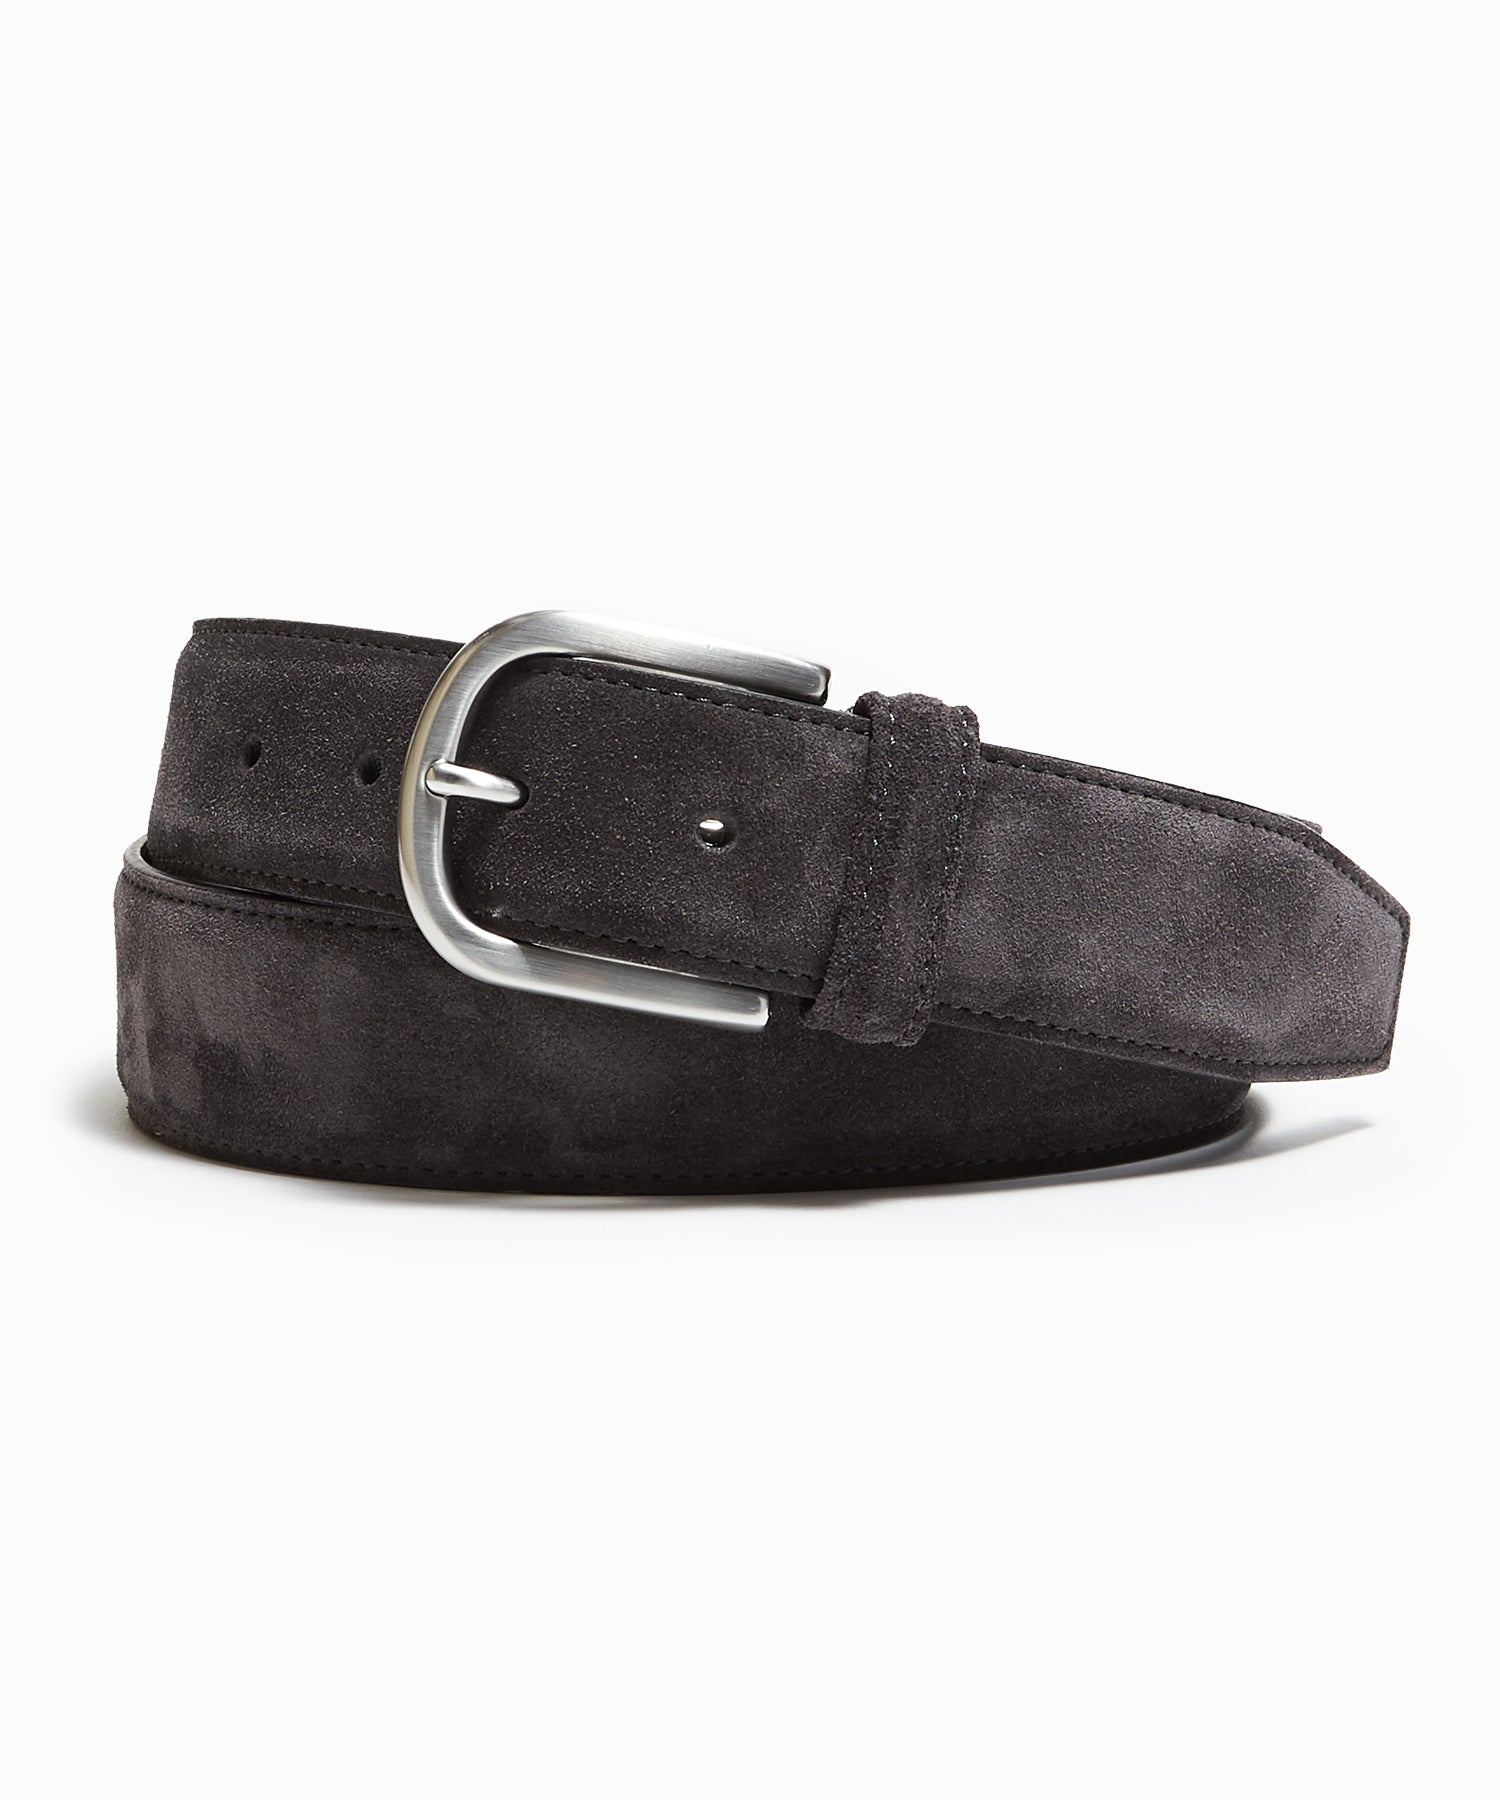 Anderson's Suede Belt in Charcoal